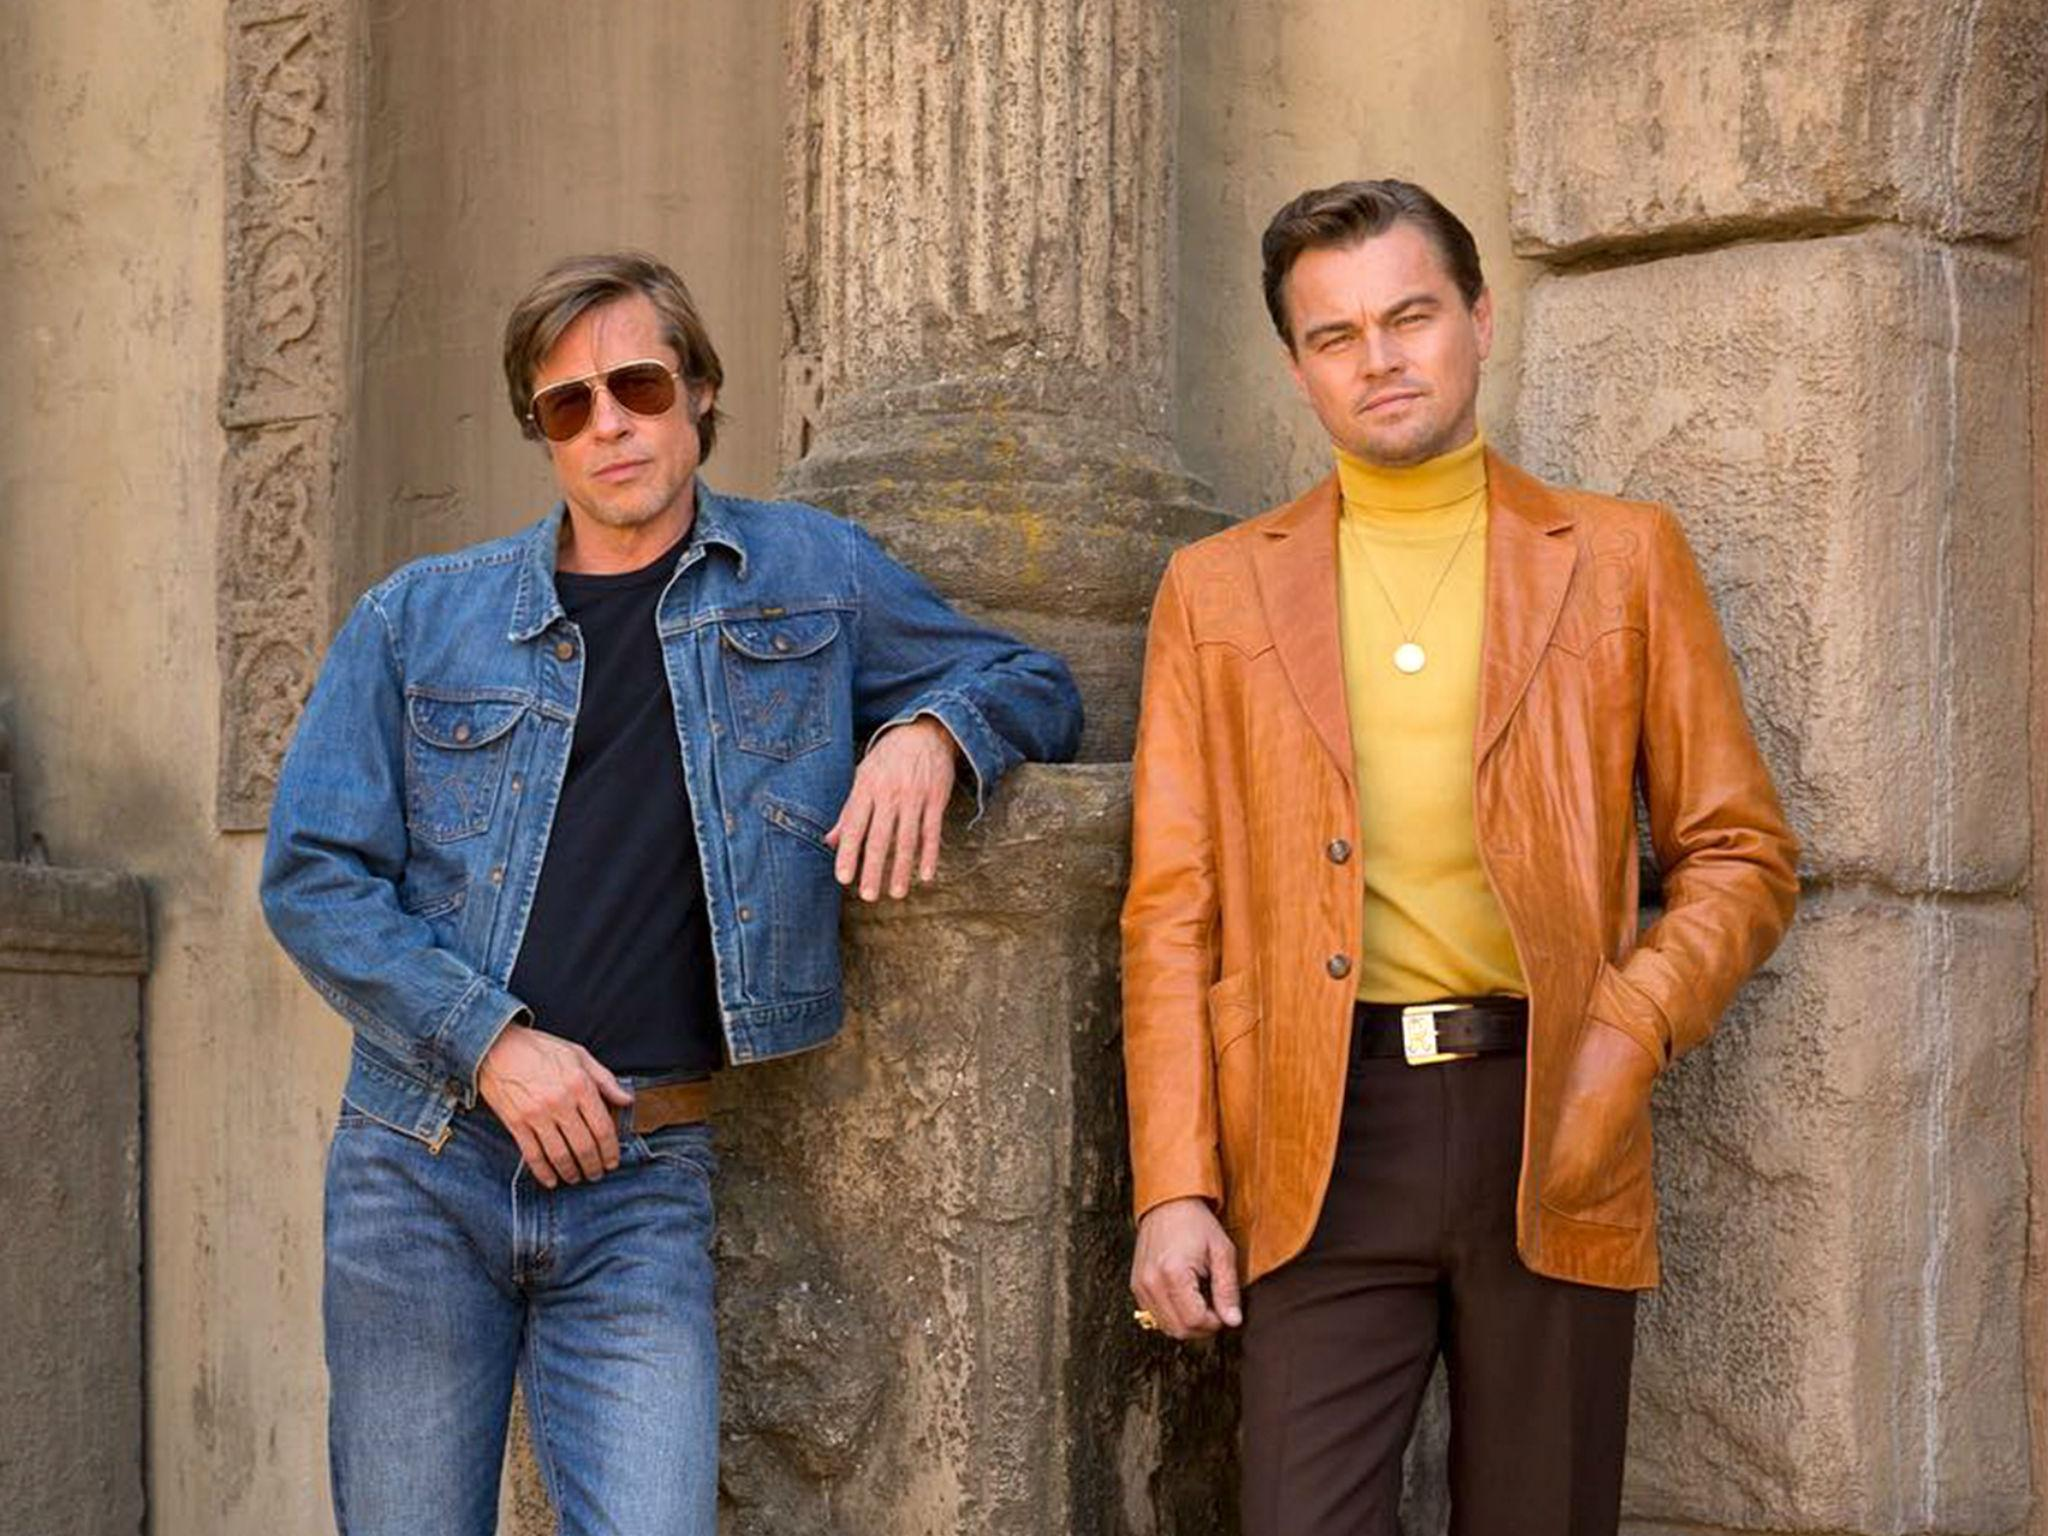 Quentin Tarantino's Once Upon a Time in Hollywood full cast list